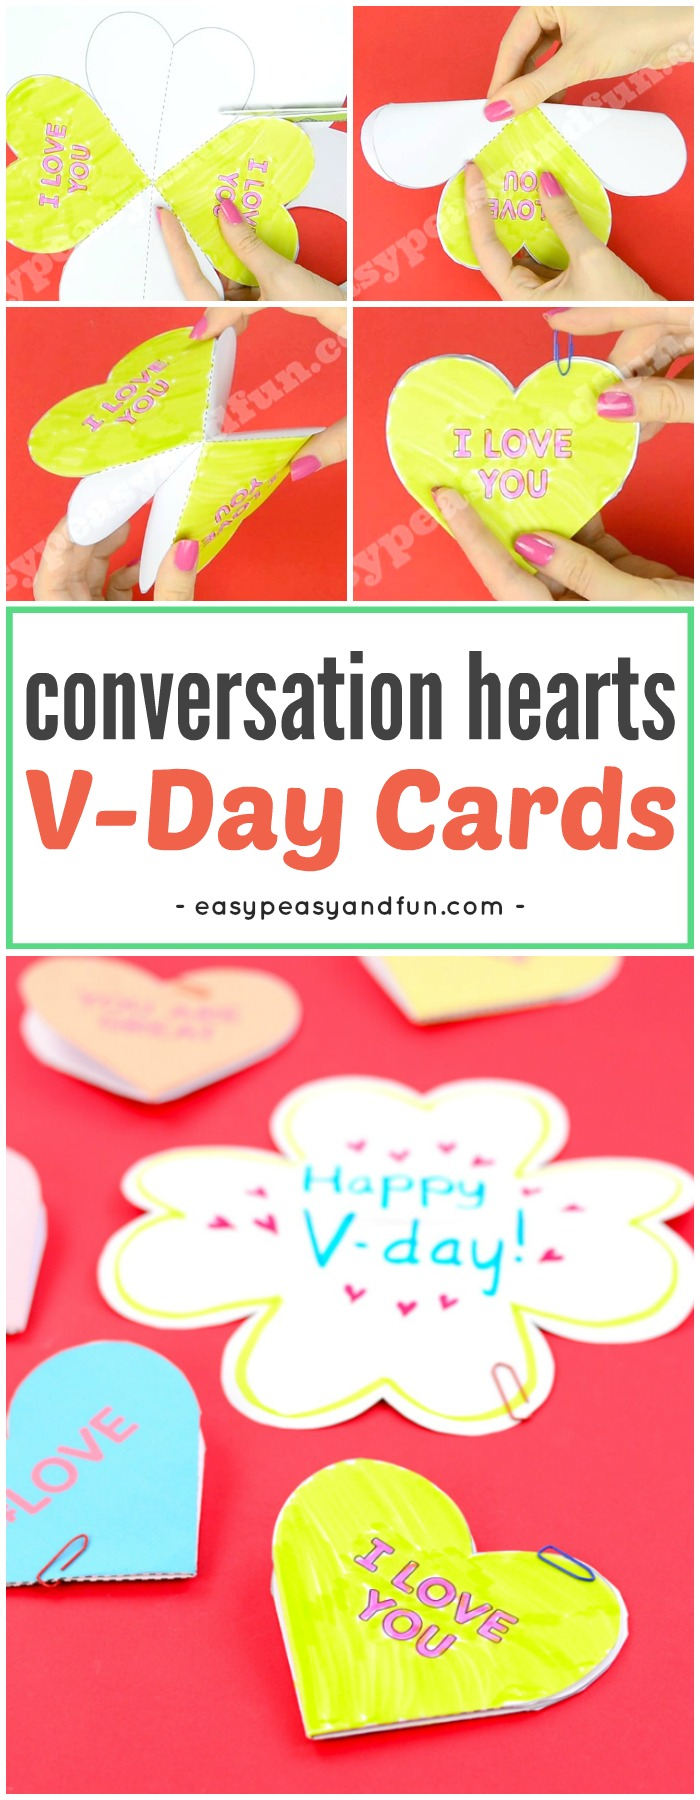 Conversation Hearts Valentines Day Cards. Fun Valentine's day craft with printable templates for kids. #Valentinesdaycraftsforkids #papercraftsforkids #Valentinesdaycardideas